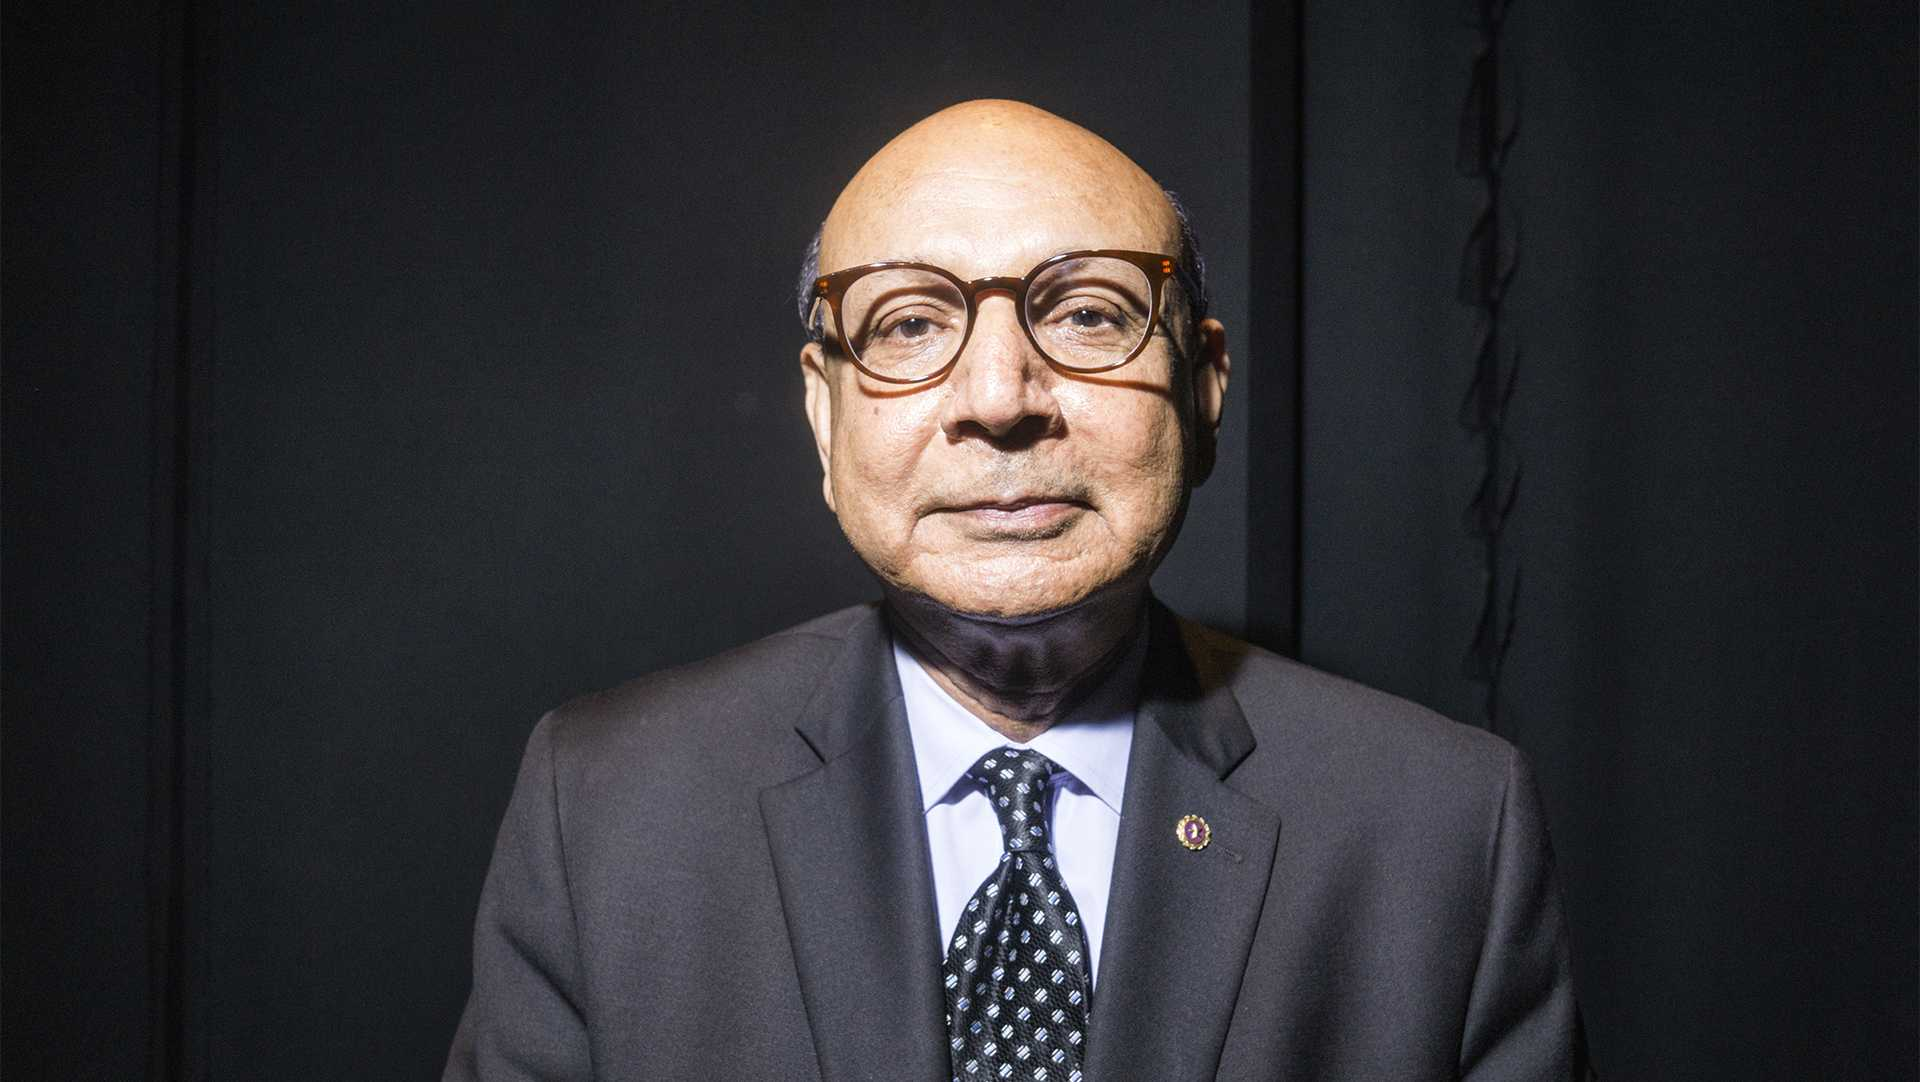 Khizr Khan poses for a portrait immediately after his speech at The Englert Theater on Monday, Oct. 2, 2017. When asked Khan stated that his most meaningful parts of the Bill of Rights, to him, were the 1st Amendment and Section 1 of the 14th Amendment. (James Year/The Daily Iowan)